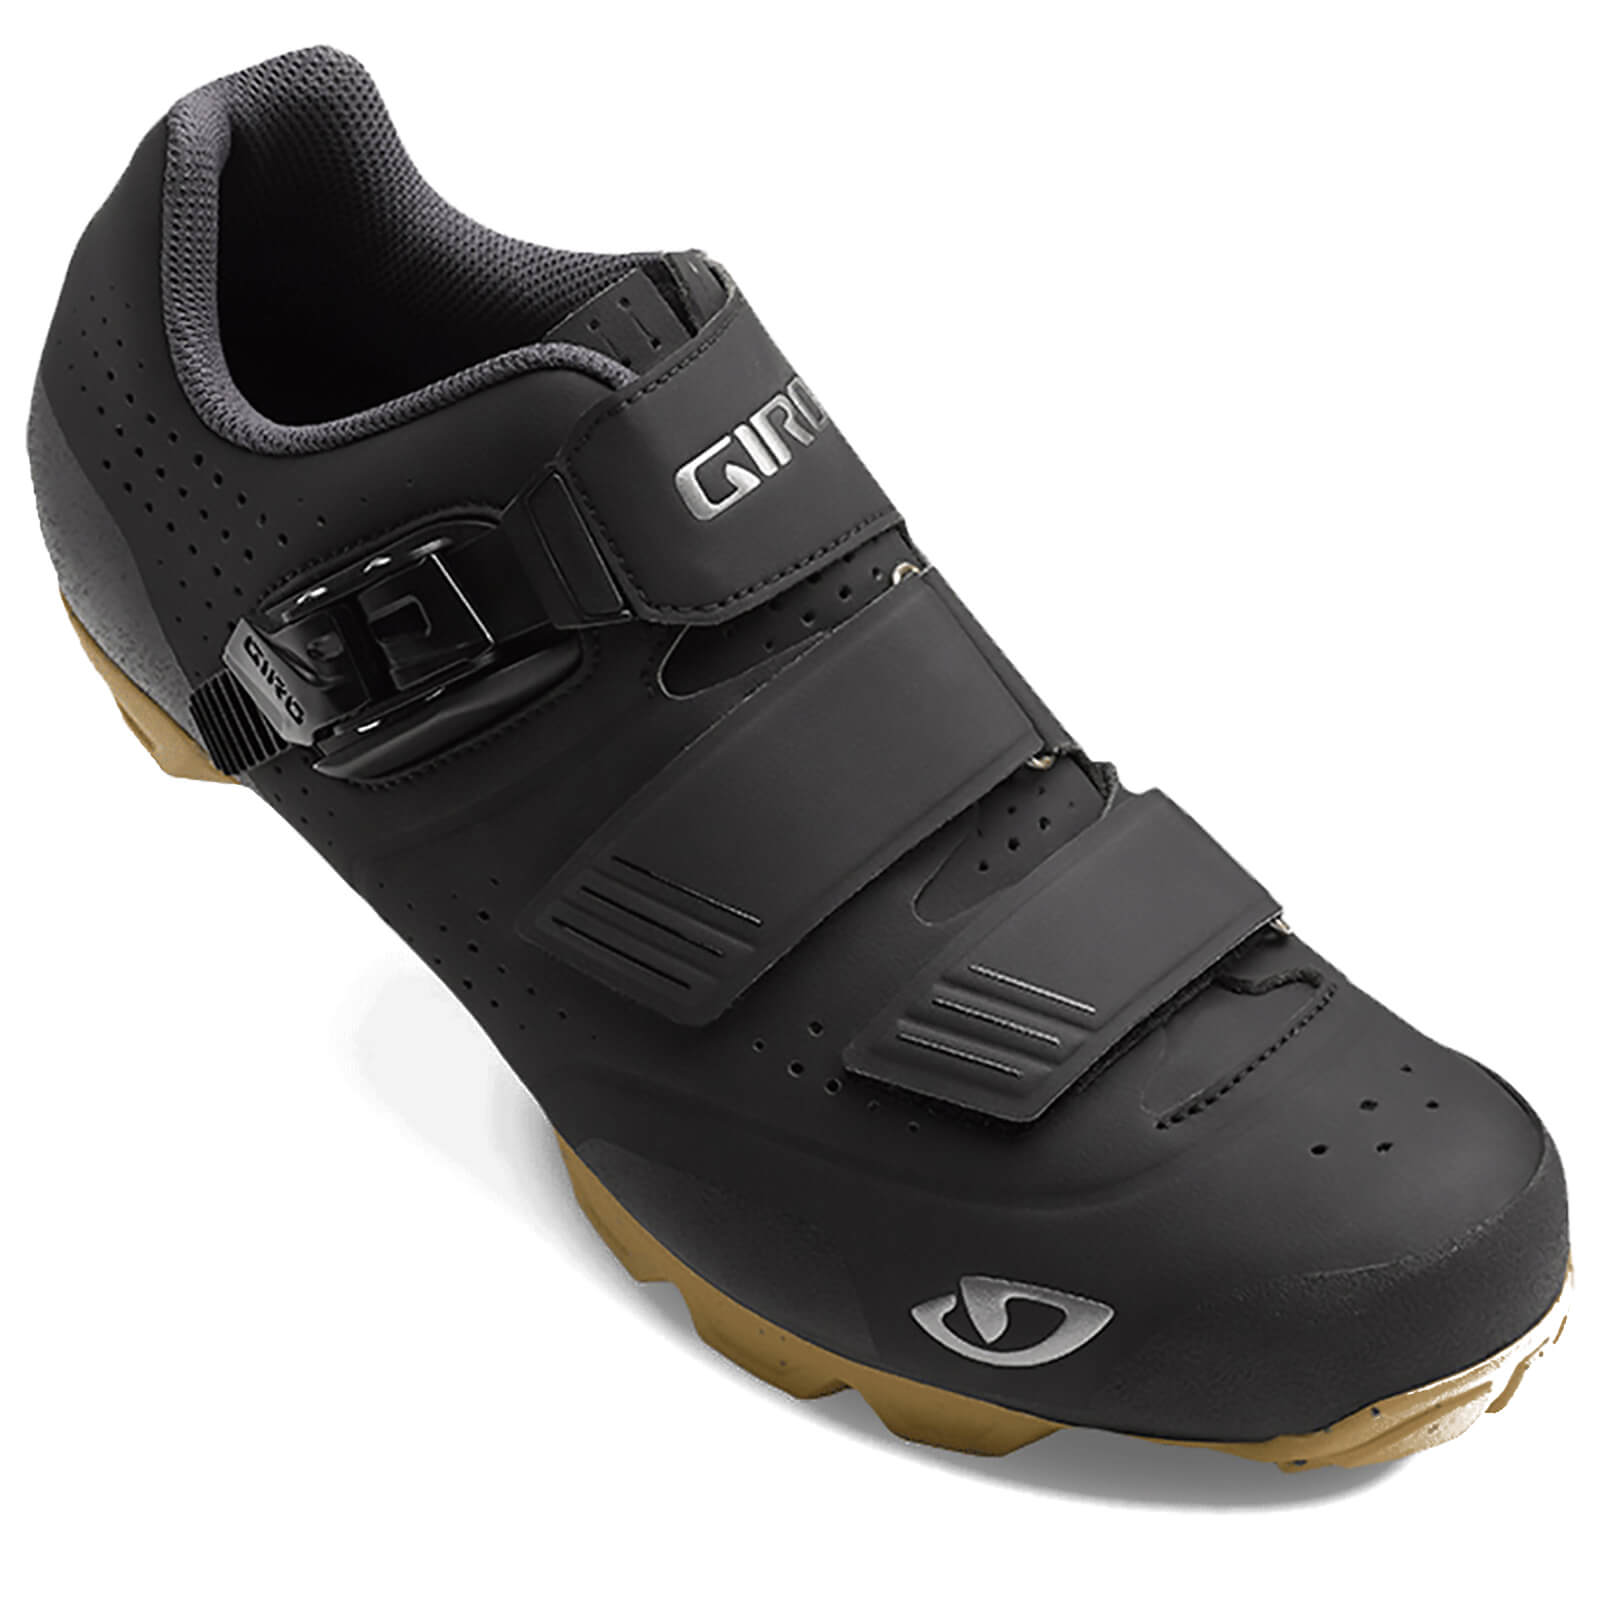 Giro Privateer R HV MTB Cycling Shoes - Black/Gum